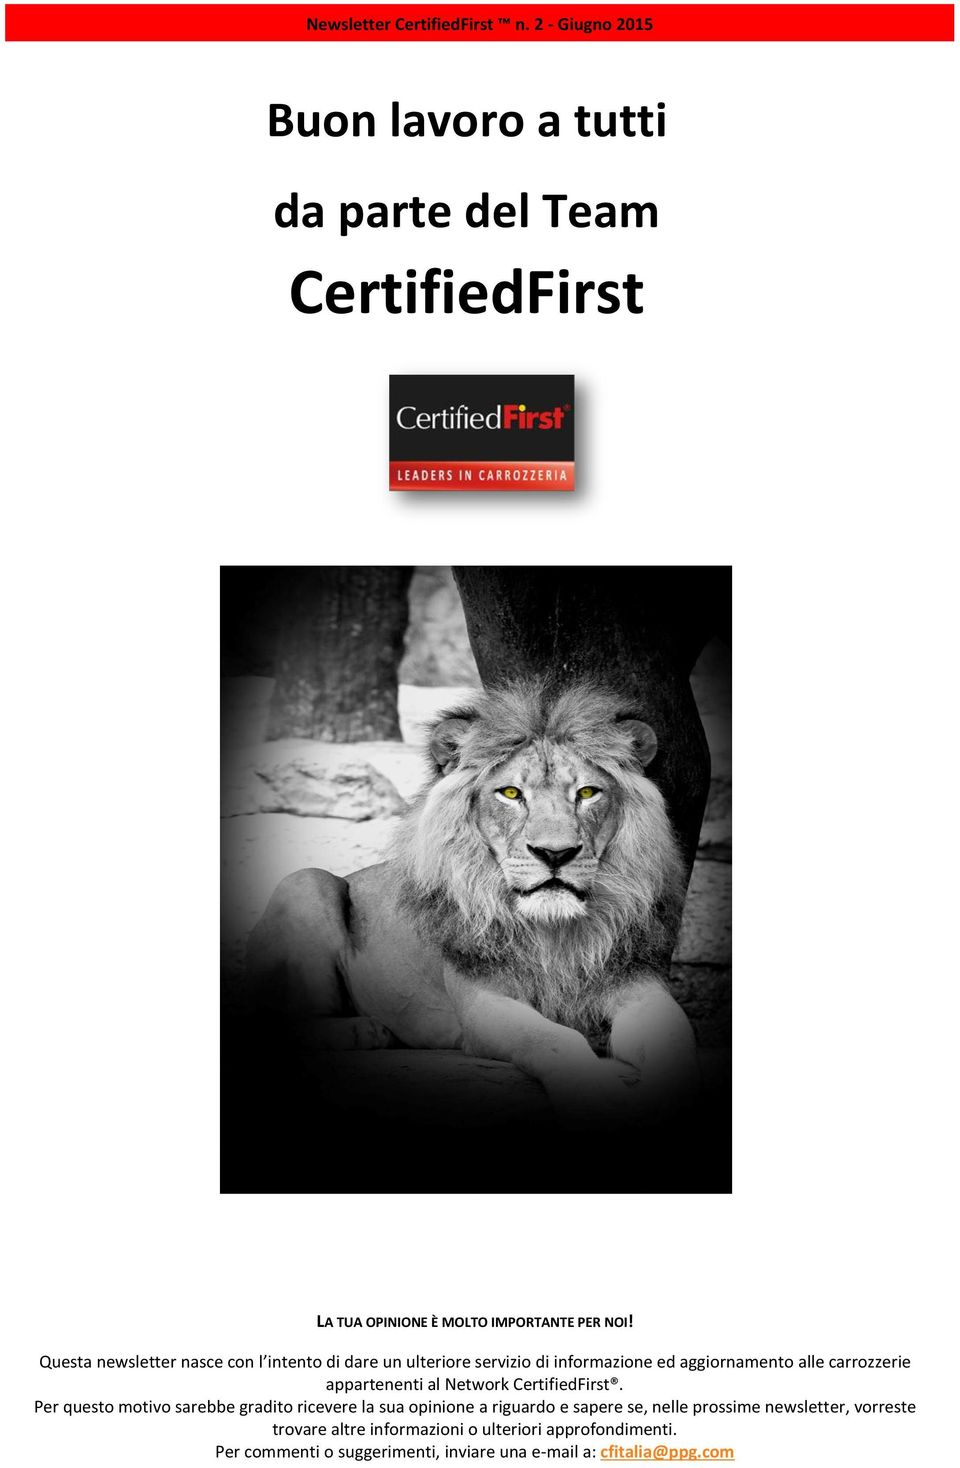 appartenenti al Network CertifiedFirst.